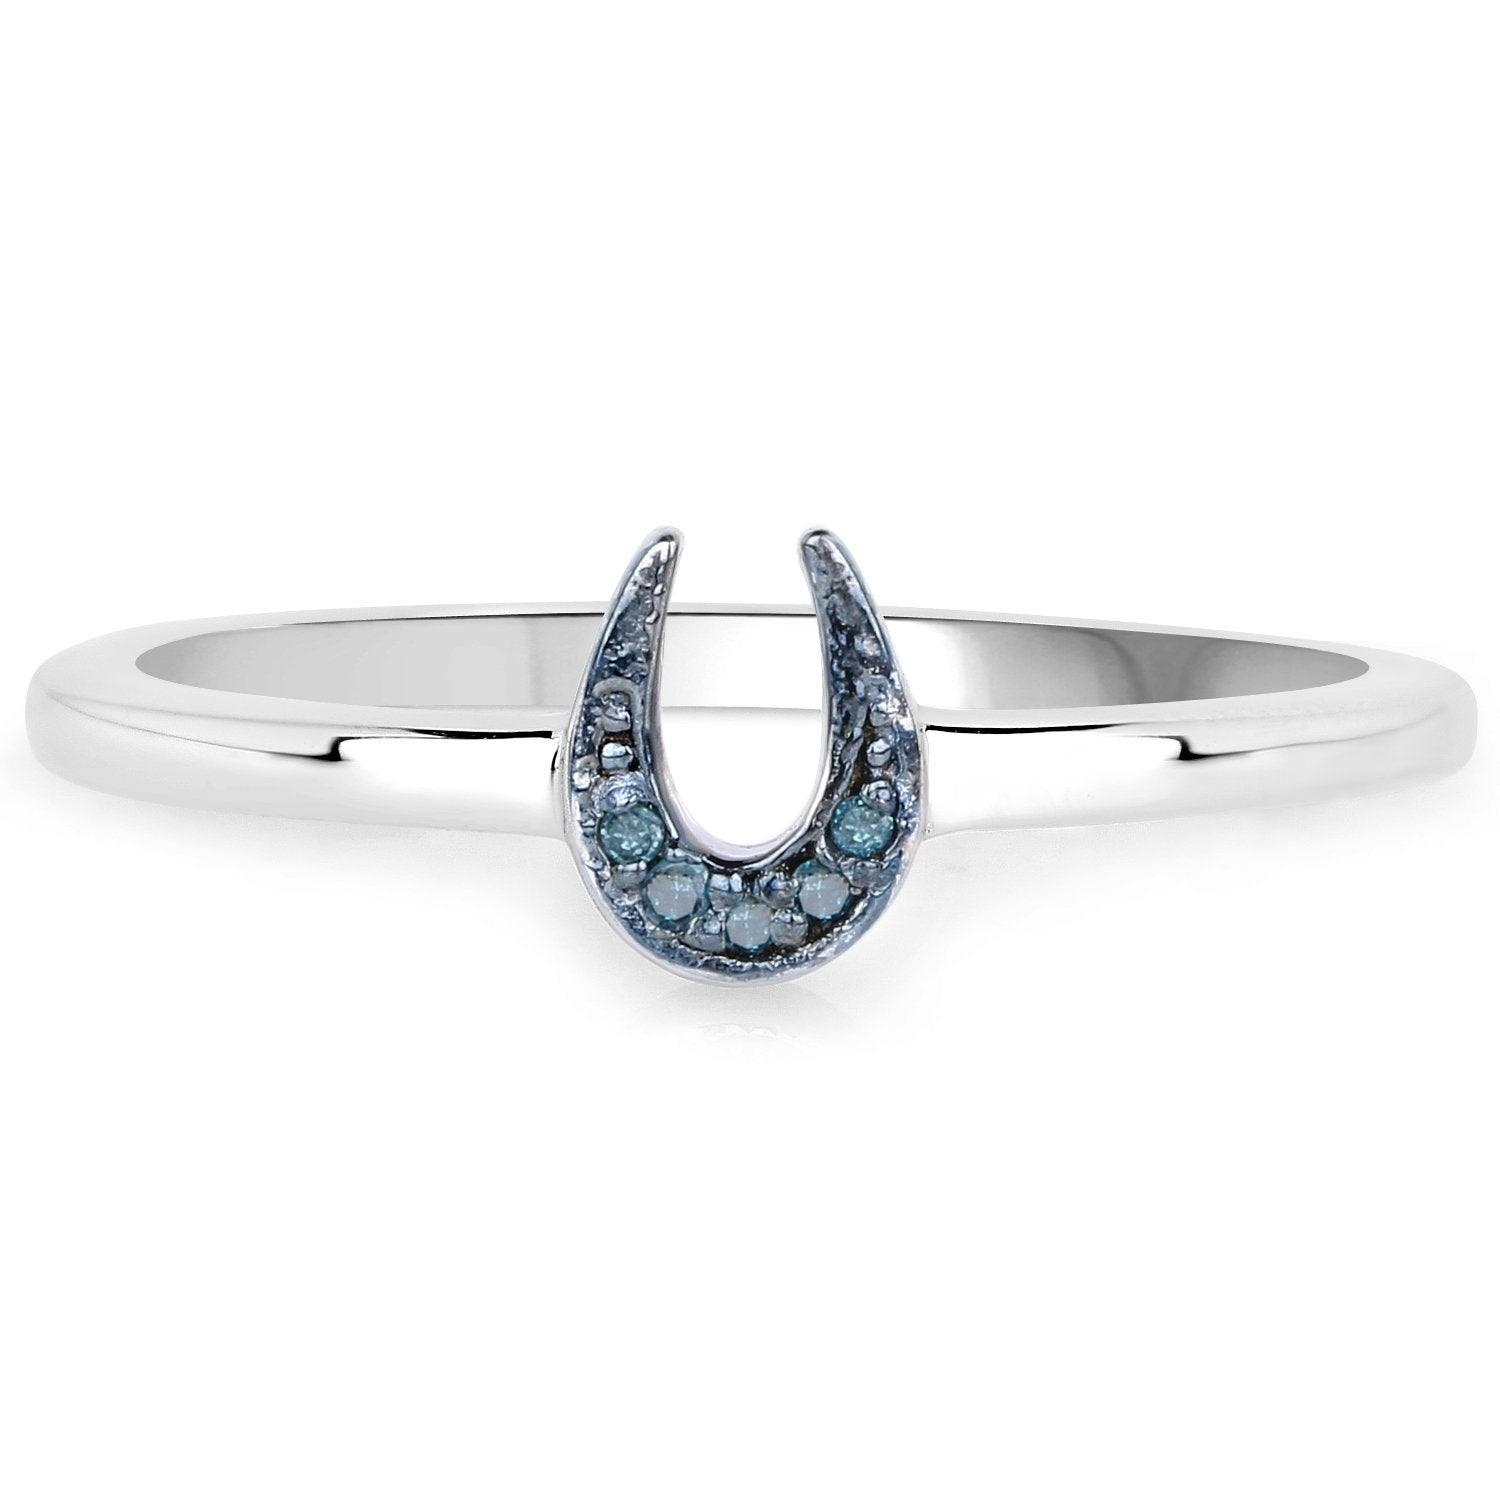 LoveHuang 0.02 Carats Genuine Blue Diamond (I-J, I2-I3) Horseshoes Ring Solid .925 Sterling Silver With Rhodium Plating